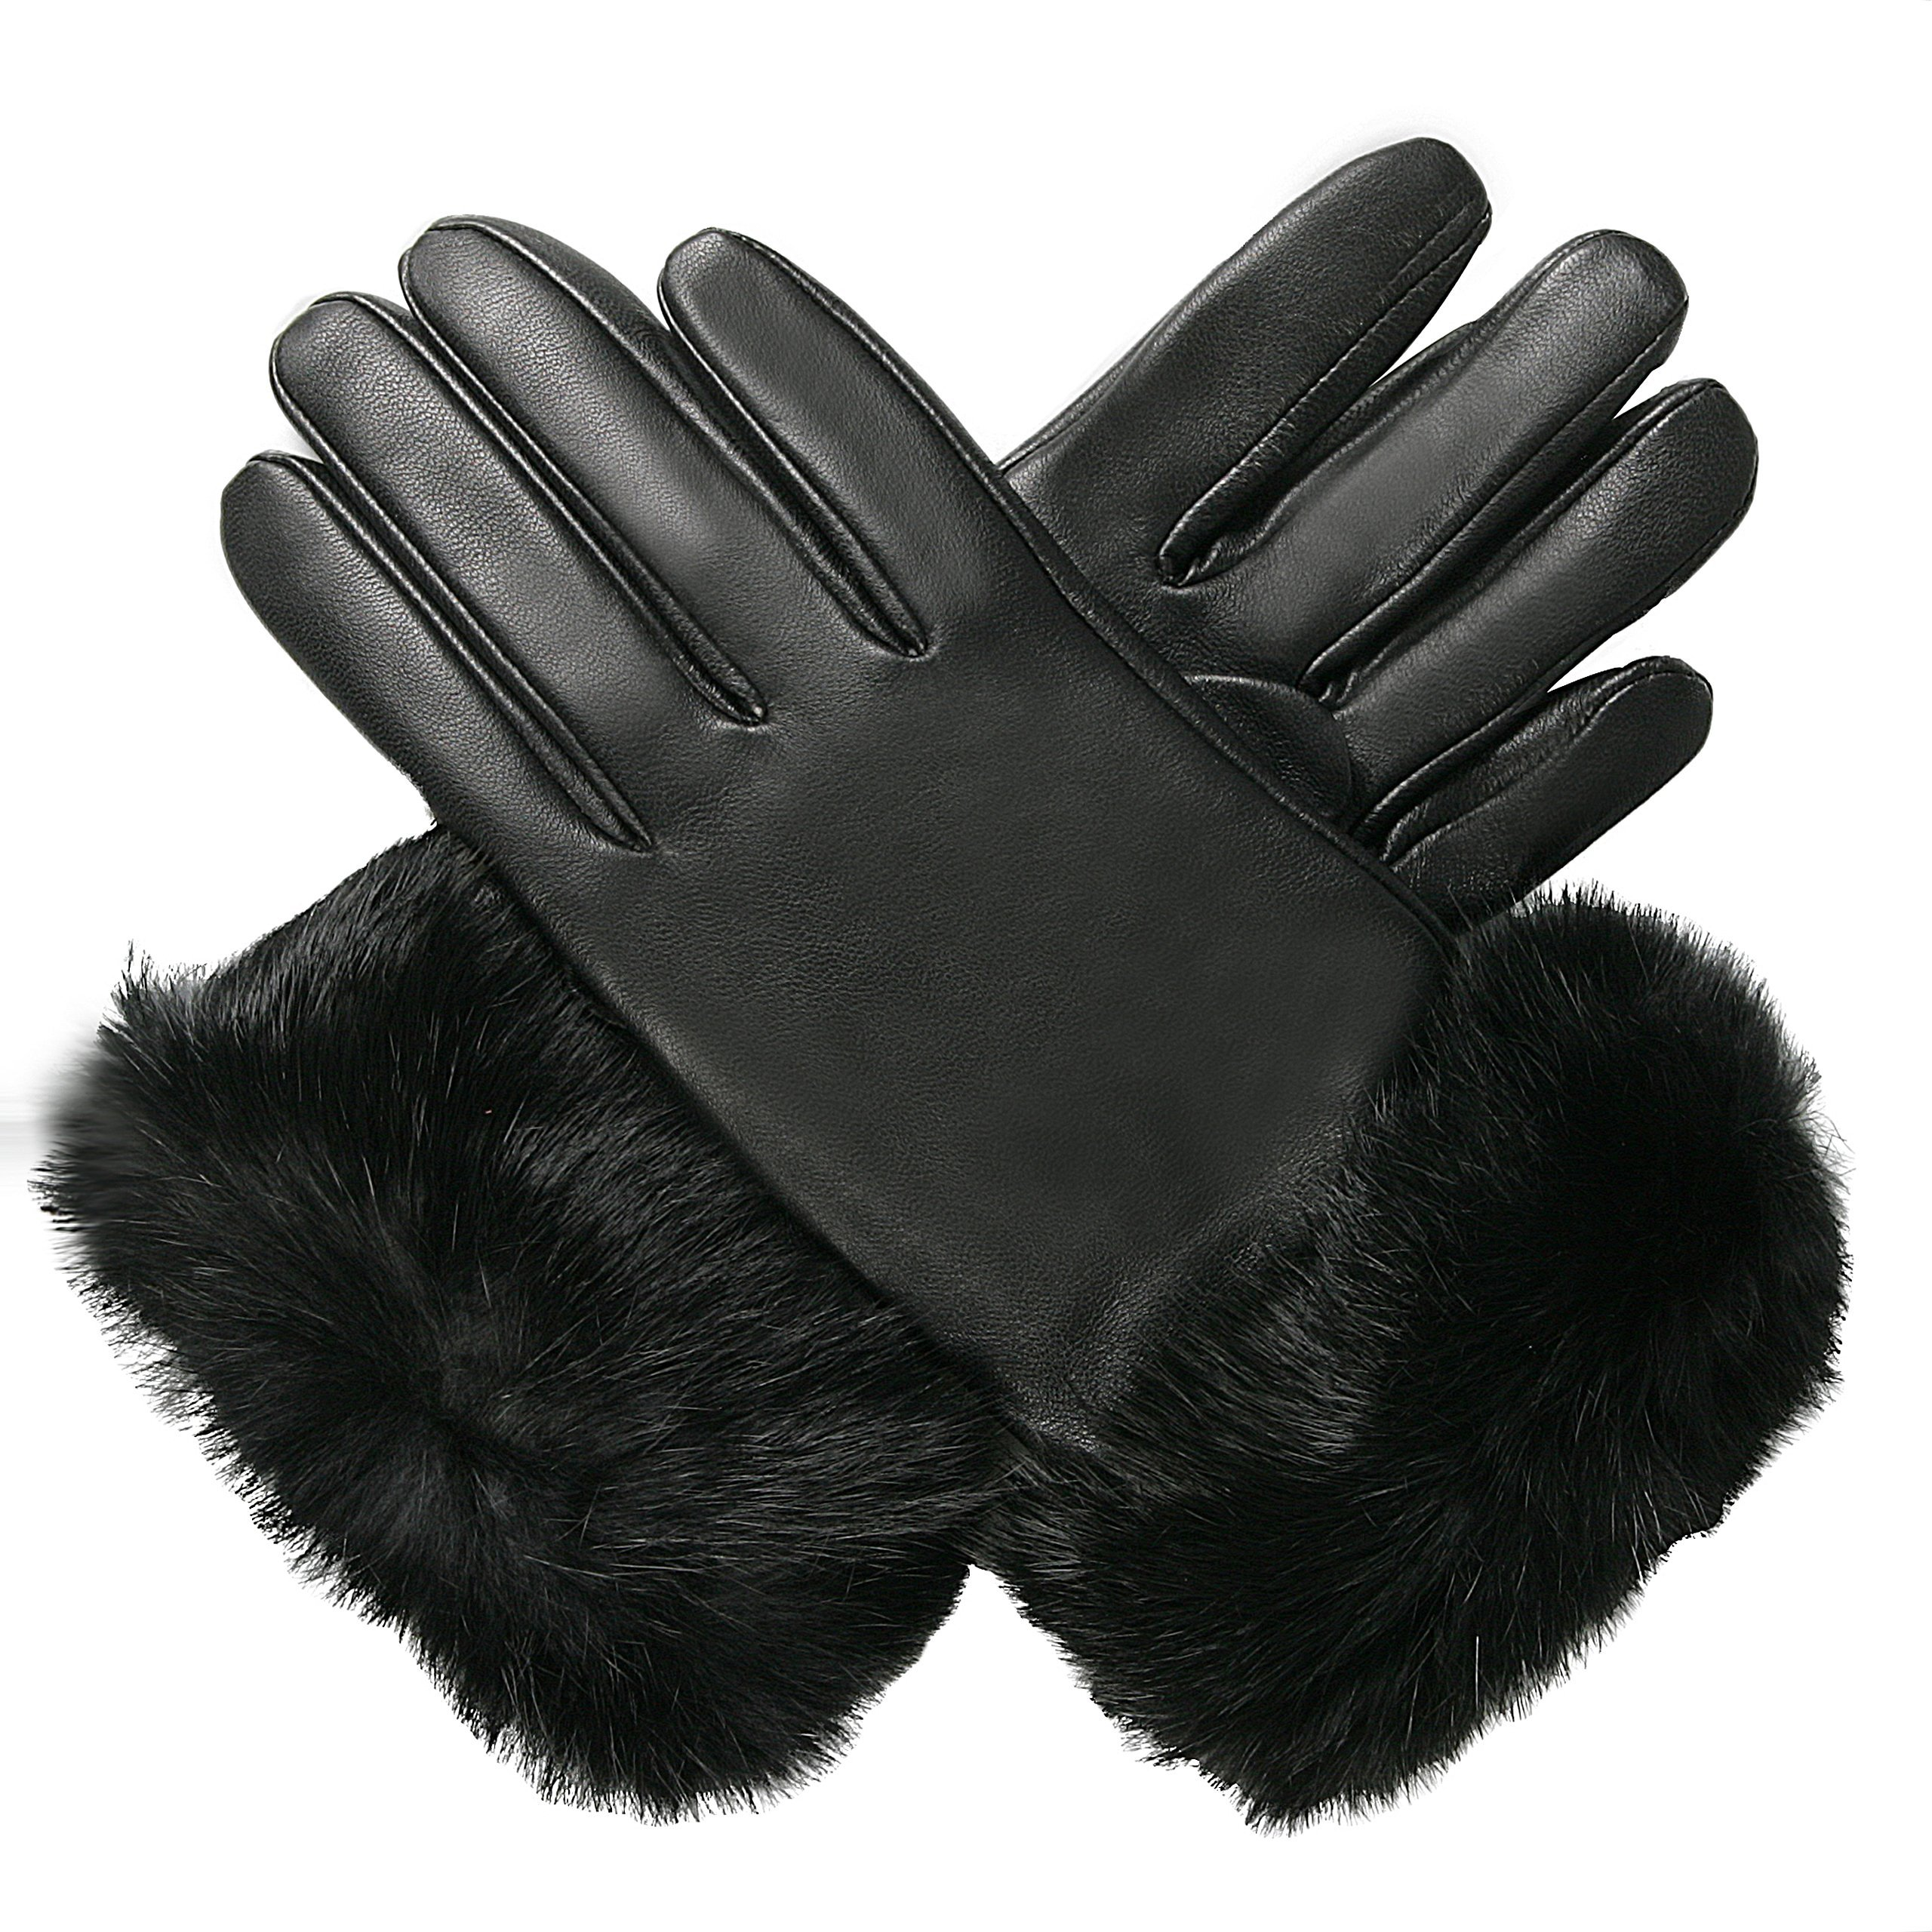 Luxury Lane Women's Rabbit Fur Cuff Cashmere Lined Lambskin Leather Gloves - Chocolate Medium by Luxury Lane (Image #3)